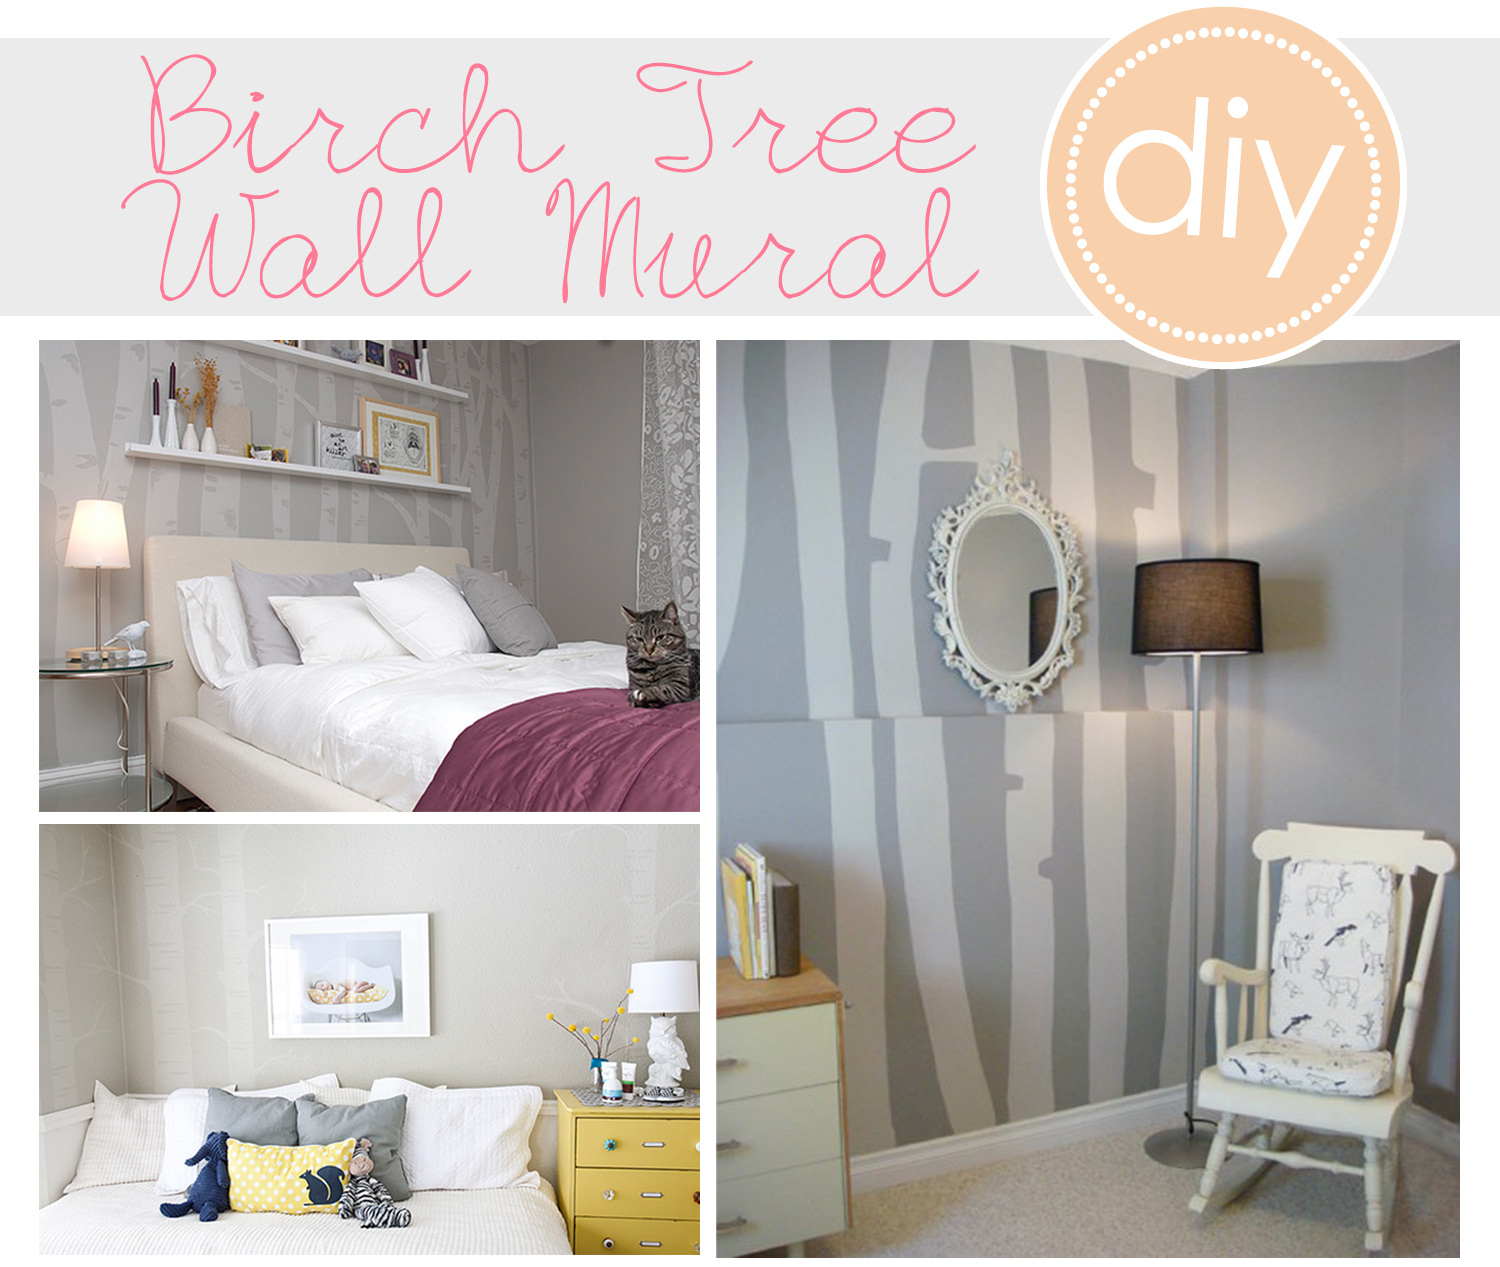 DIY Trend Birch Tree Wall Murals At Home With Natalie